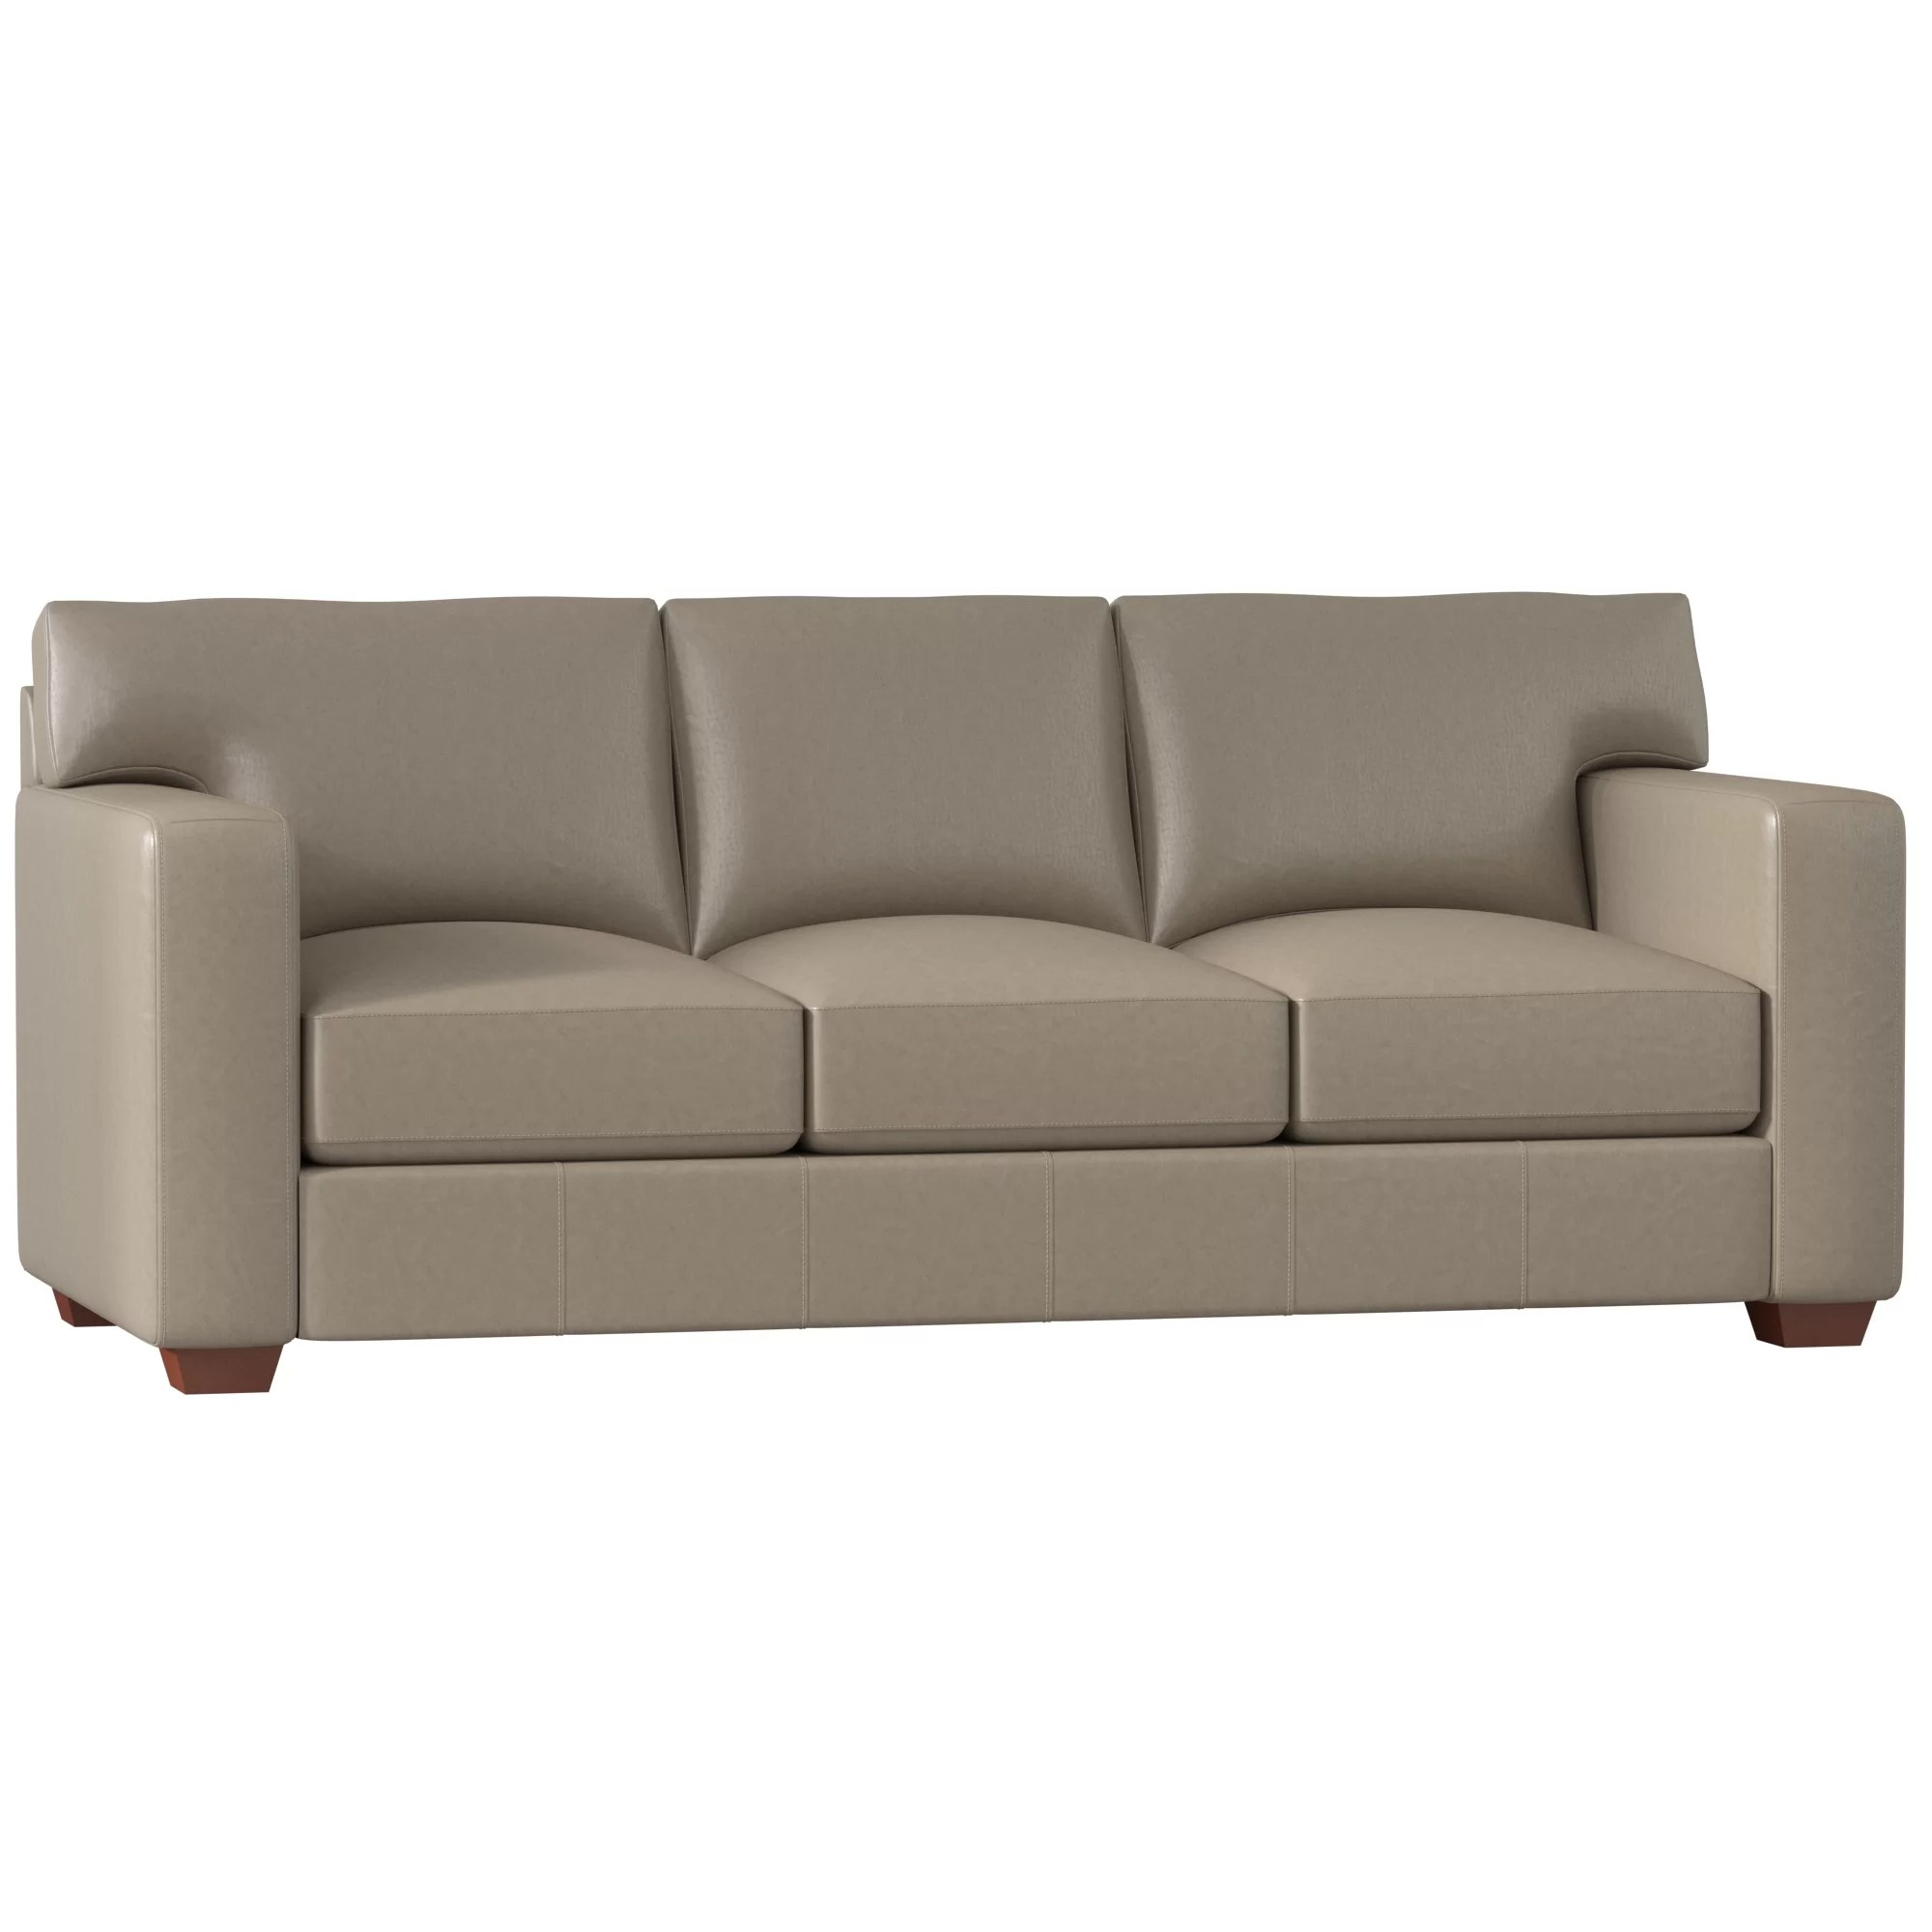 Sofa Leather Repair Toronto Birch Lane Heritage Pratt Leather Sofa Reviews Birch Lane